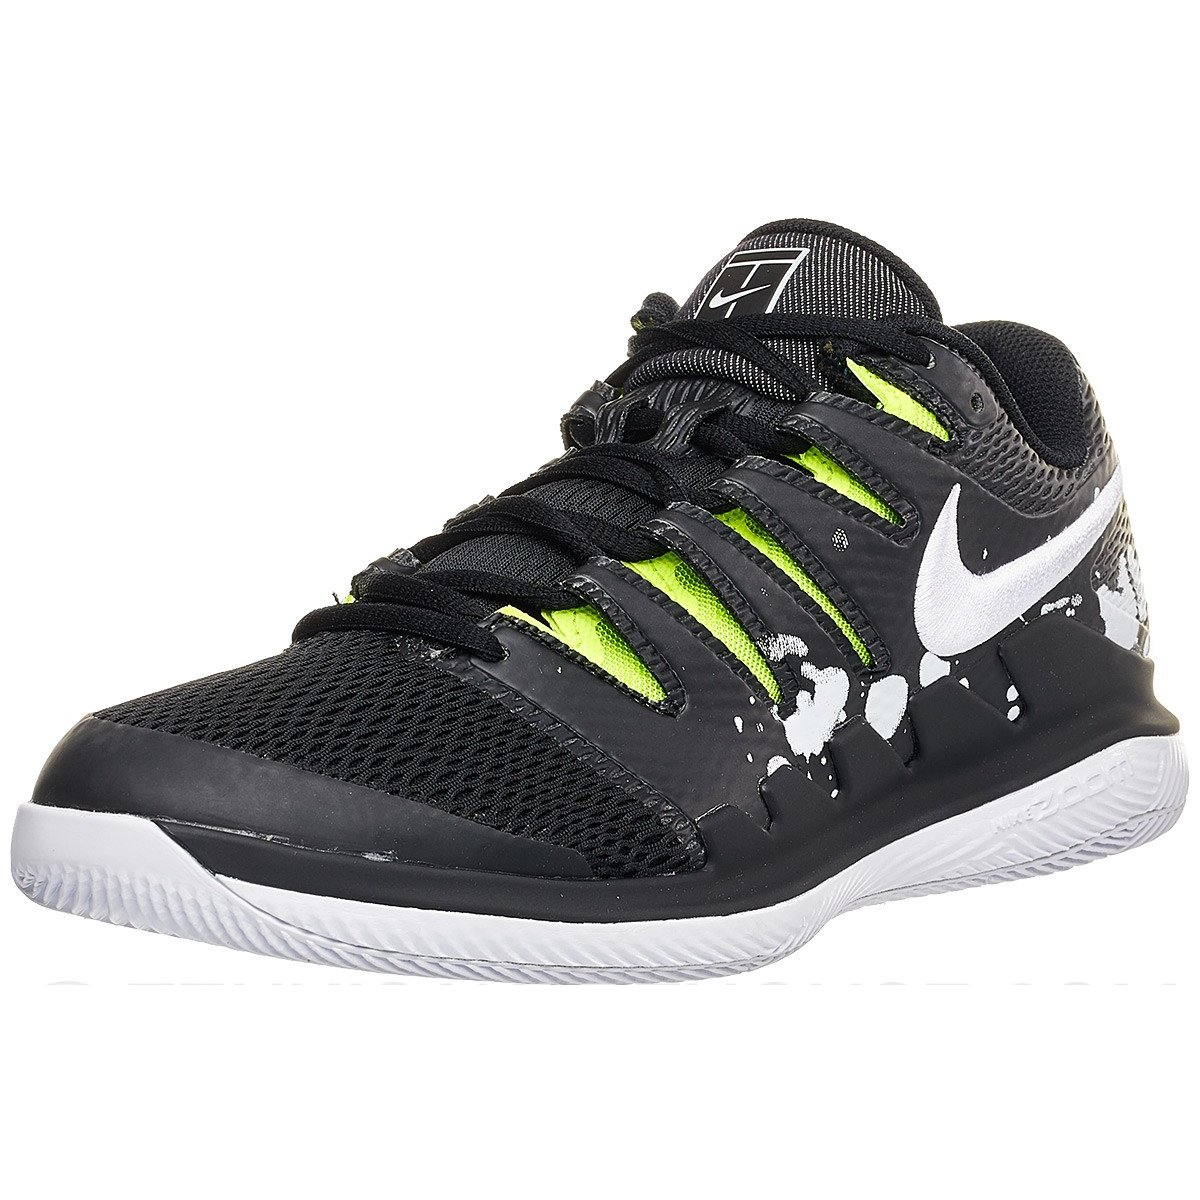 Nike Air Zoom Vapor X PRM Black/White Men's Shoes